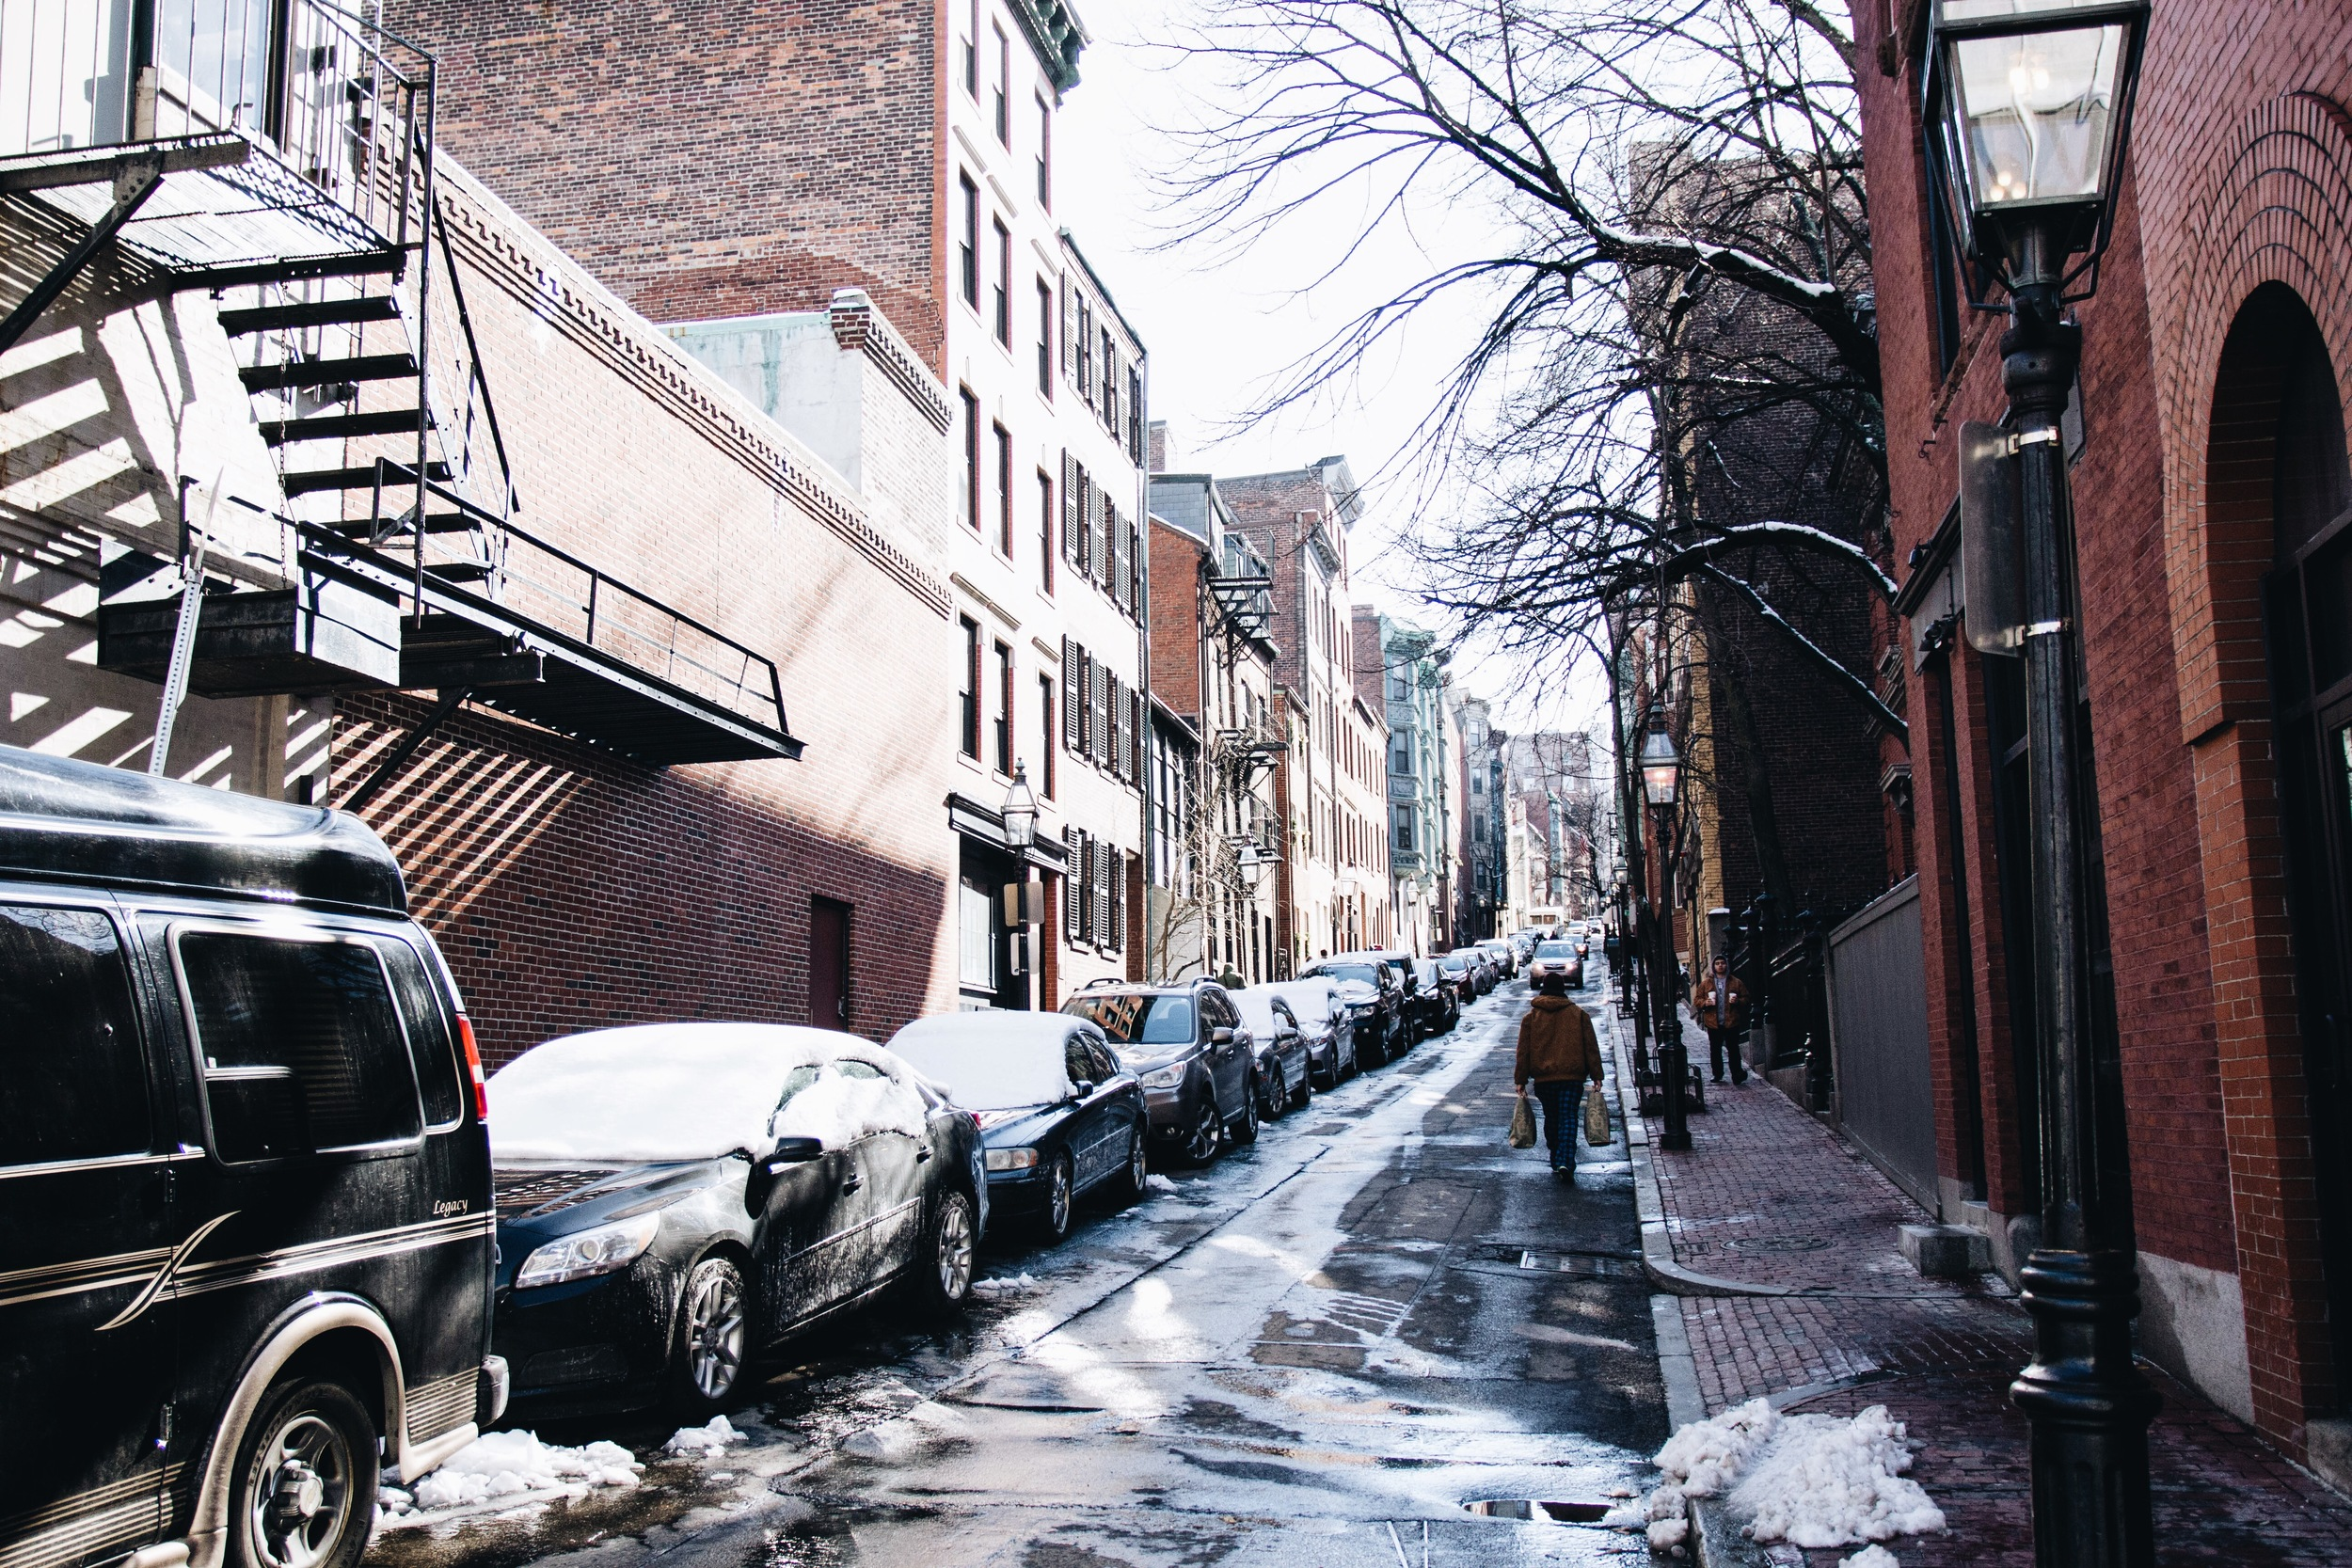 {Beacon Hill has been like a beautiful snow globe this past week}